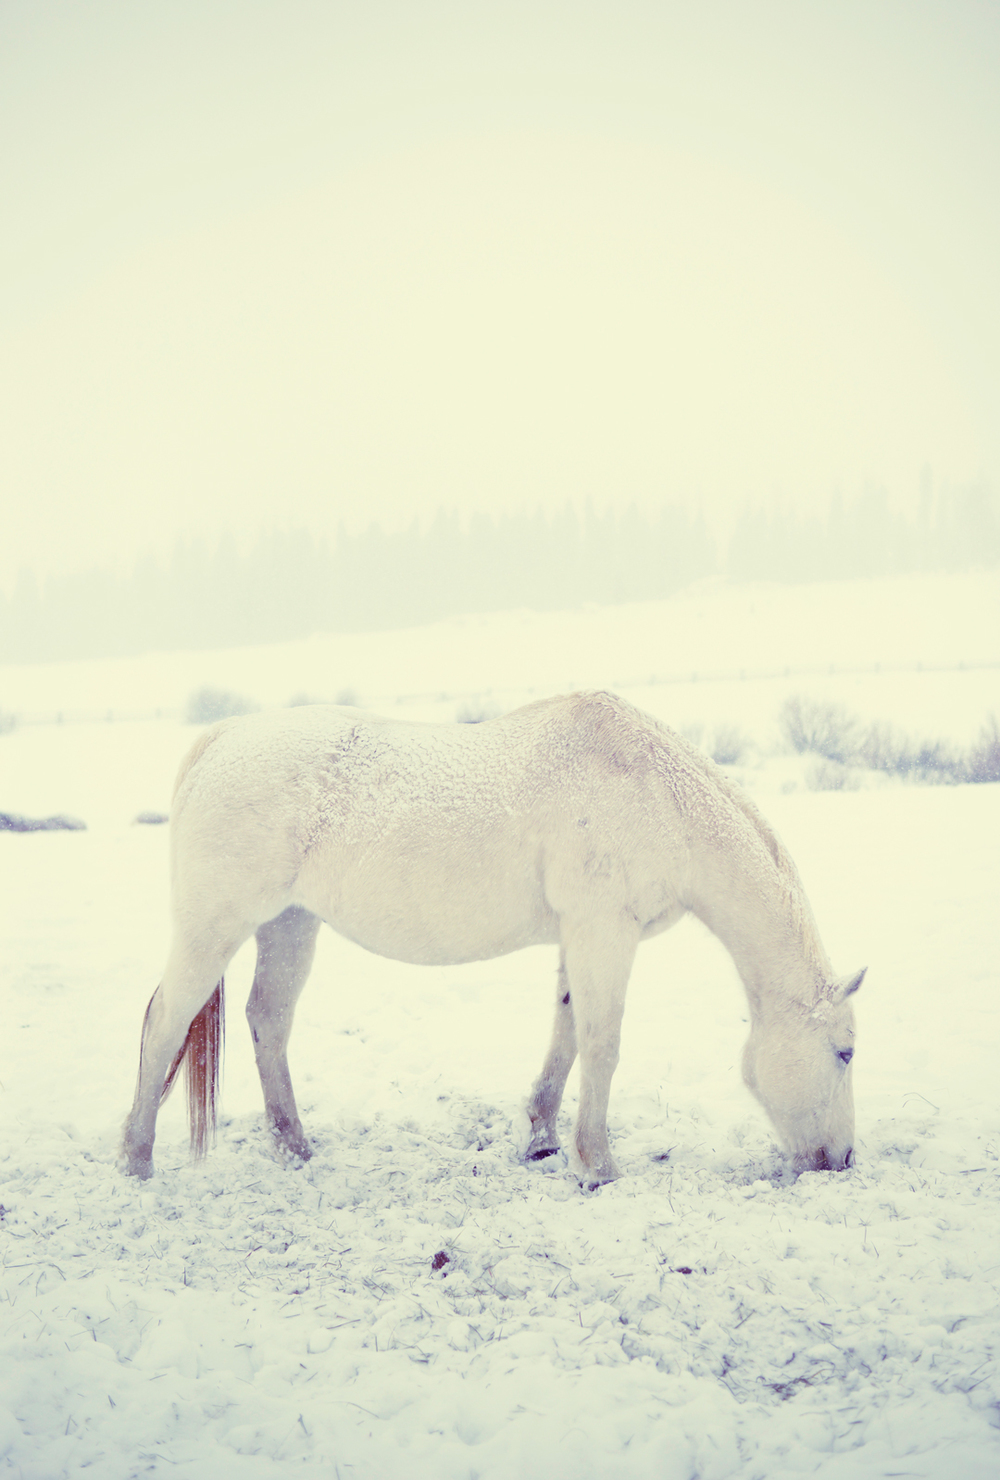 whiteonwhitehorse-copy.jpg